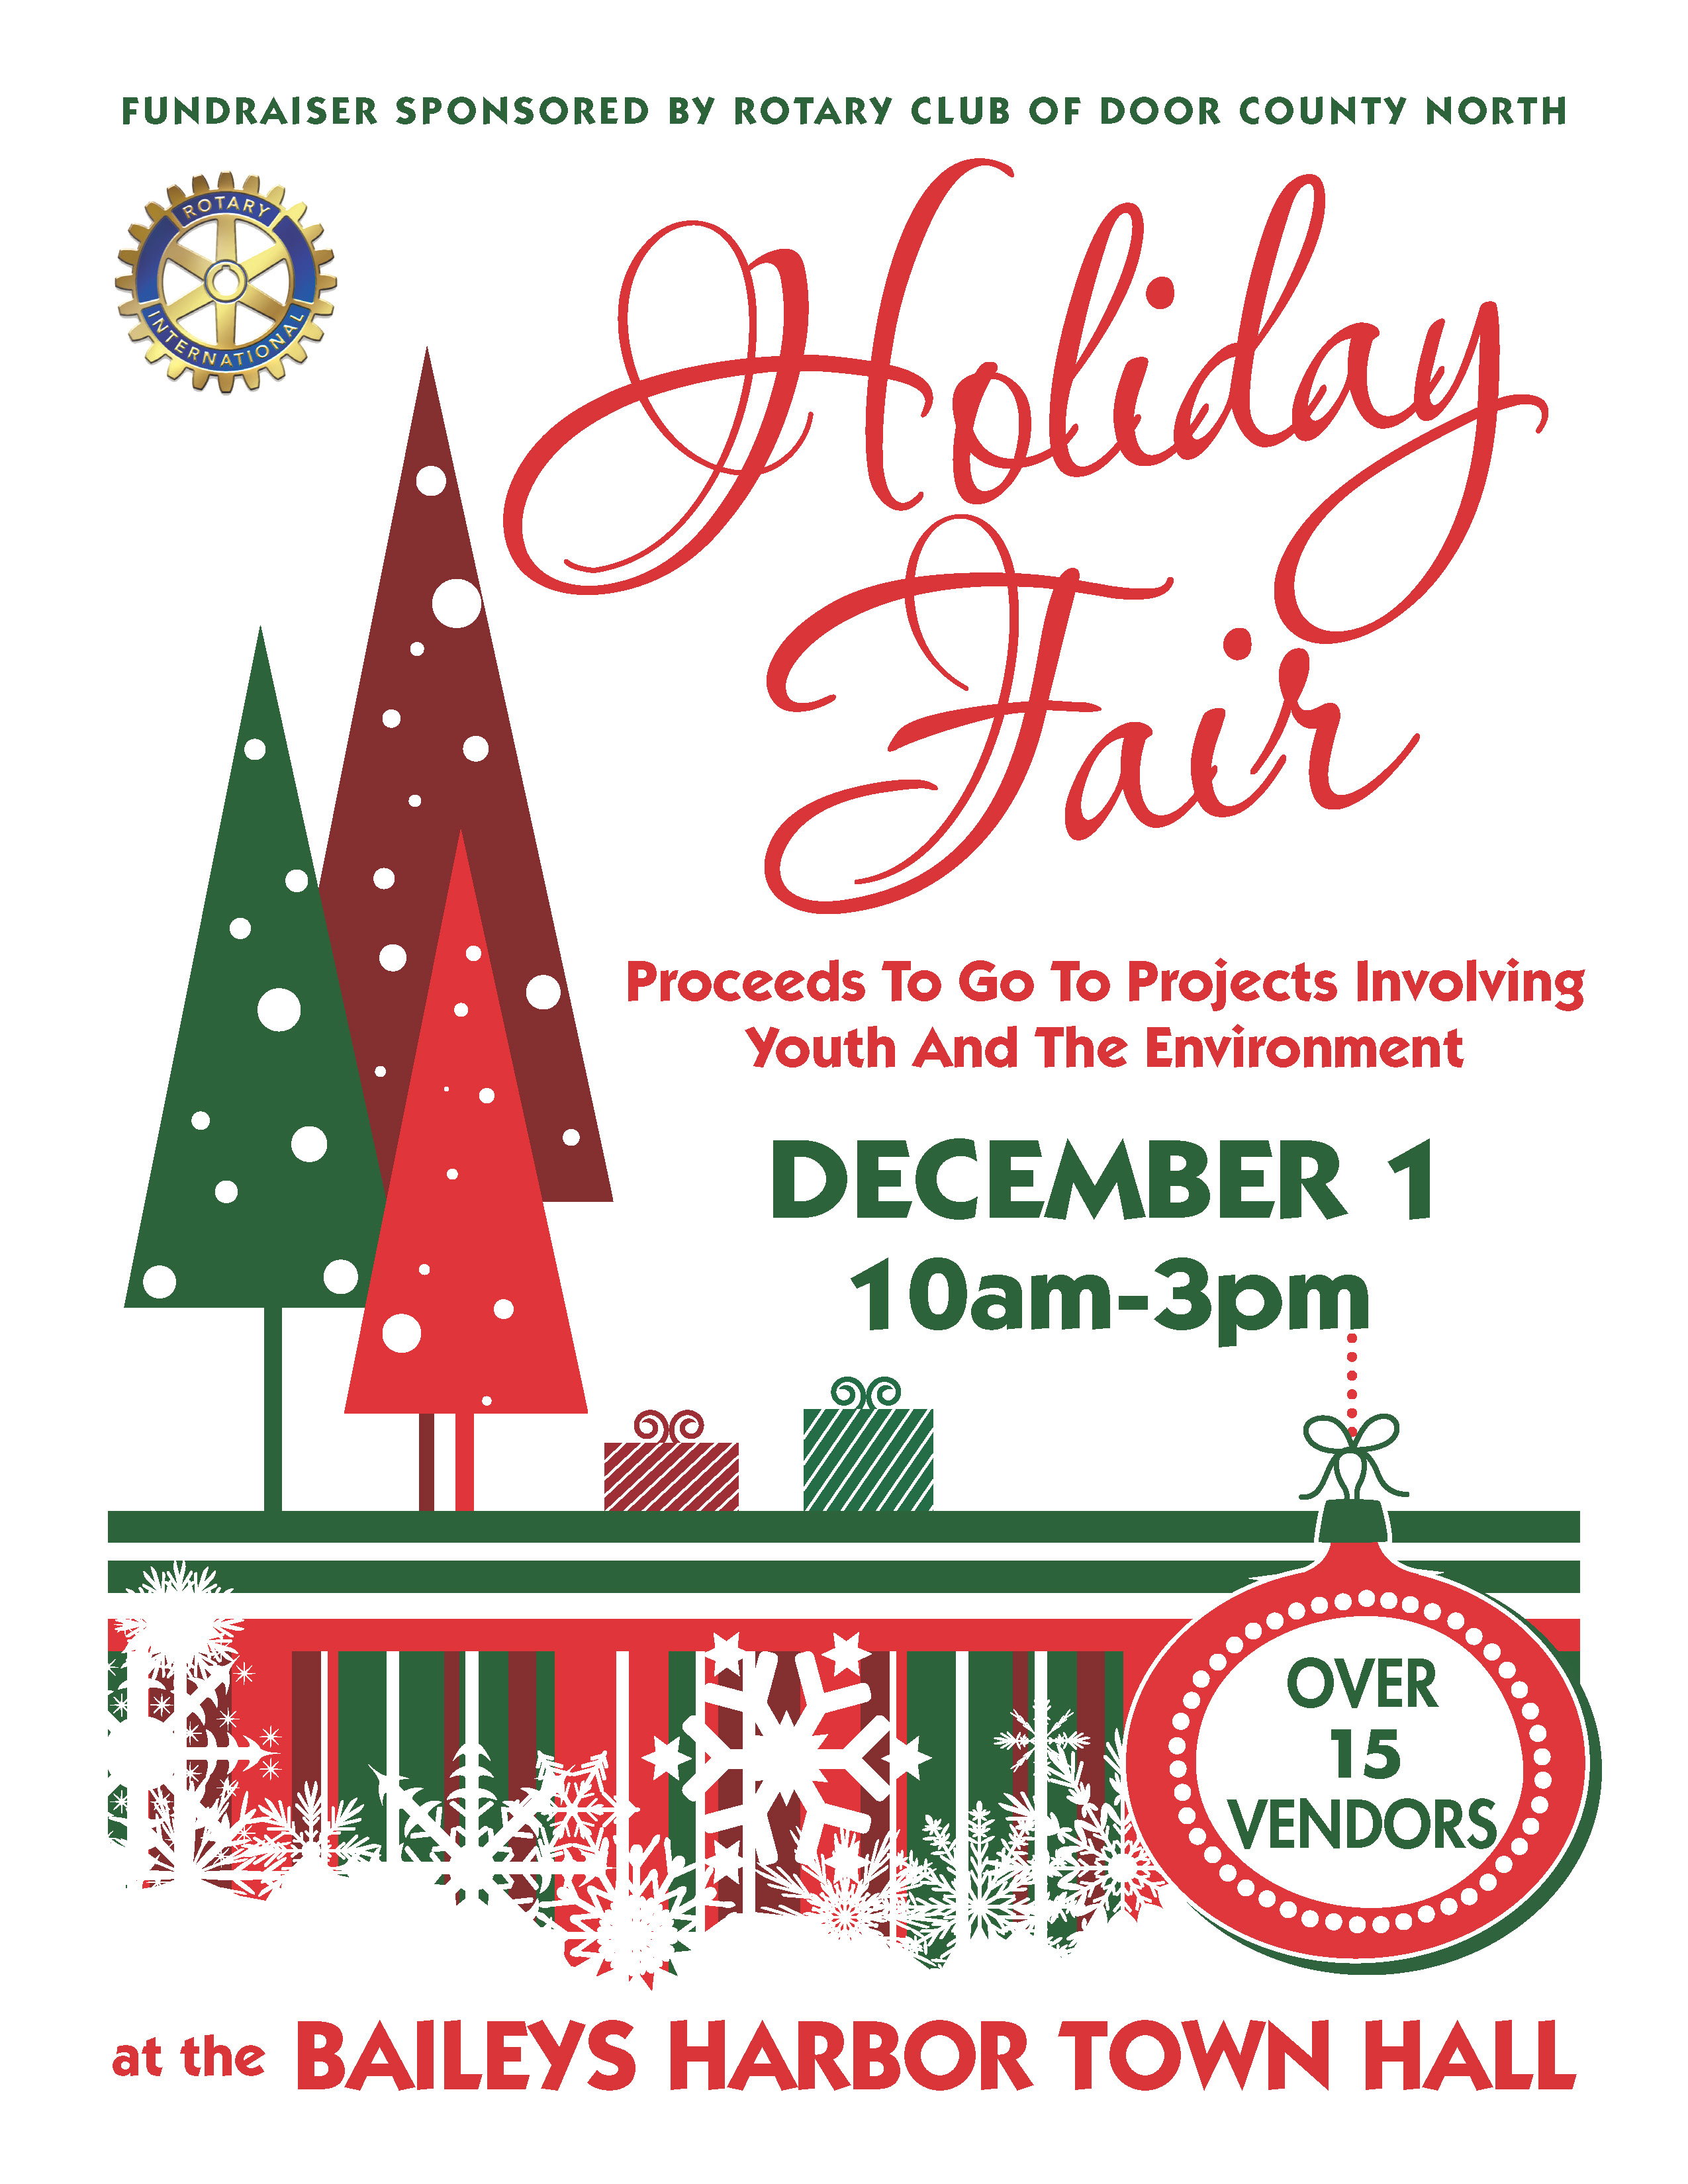 Holiday Fair by Door County North Rotary Club Photo